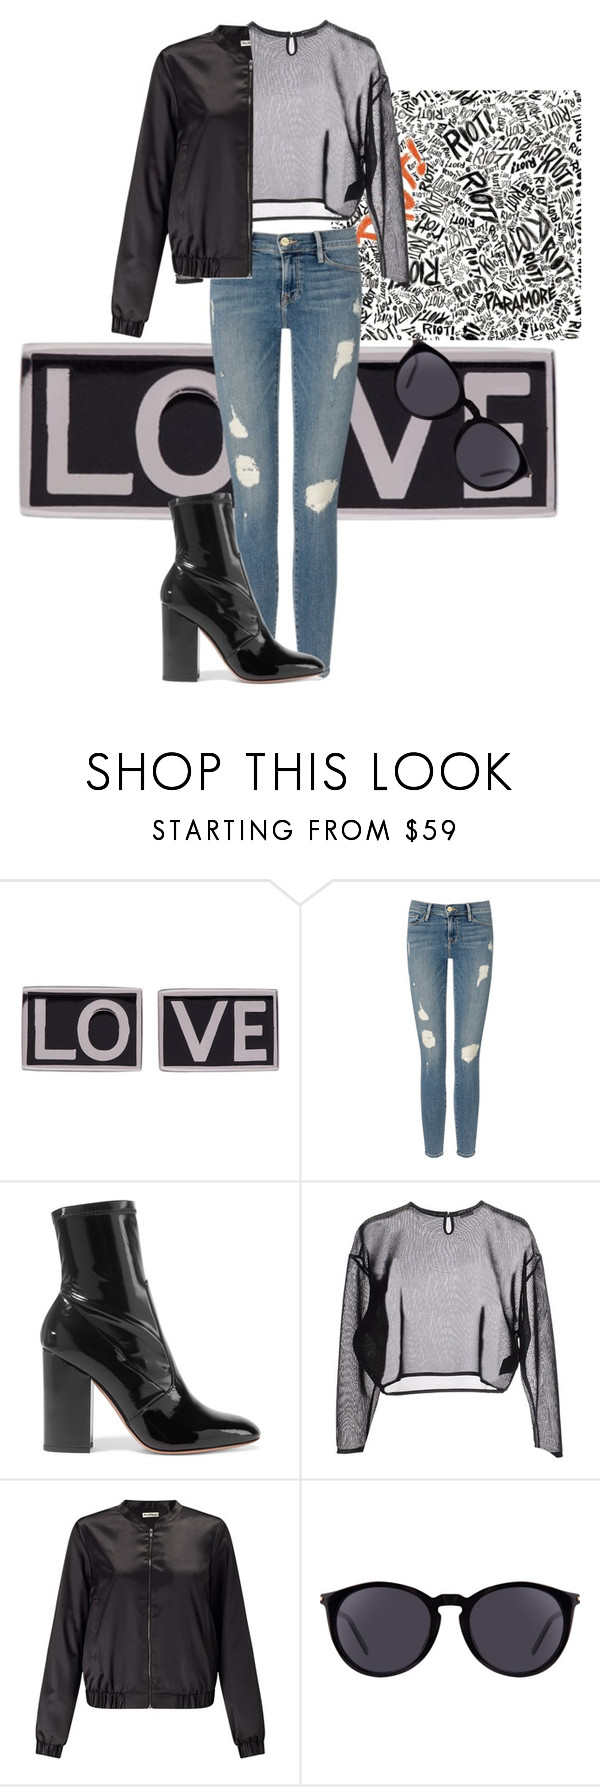 """Untitled #694"" by polyvoresets12 ❤ liked on Polyvore featuring Givenchy, Frame Denim, Valentino, Yves Saint Laurent and Miss Selfridge"